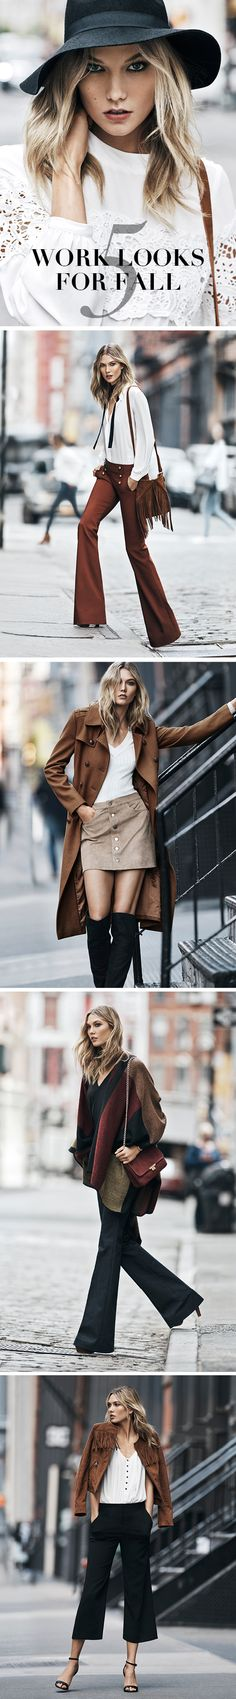 Here's a Karlie Kloss + Express look for every day of the workweek. Rich colors, soft textures, feminine details, seventies cues and new leg shapes define the season. Also, how amazing is that striped poncho with dark flare jeans?